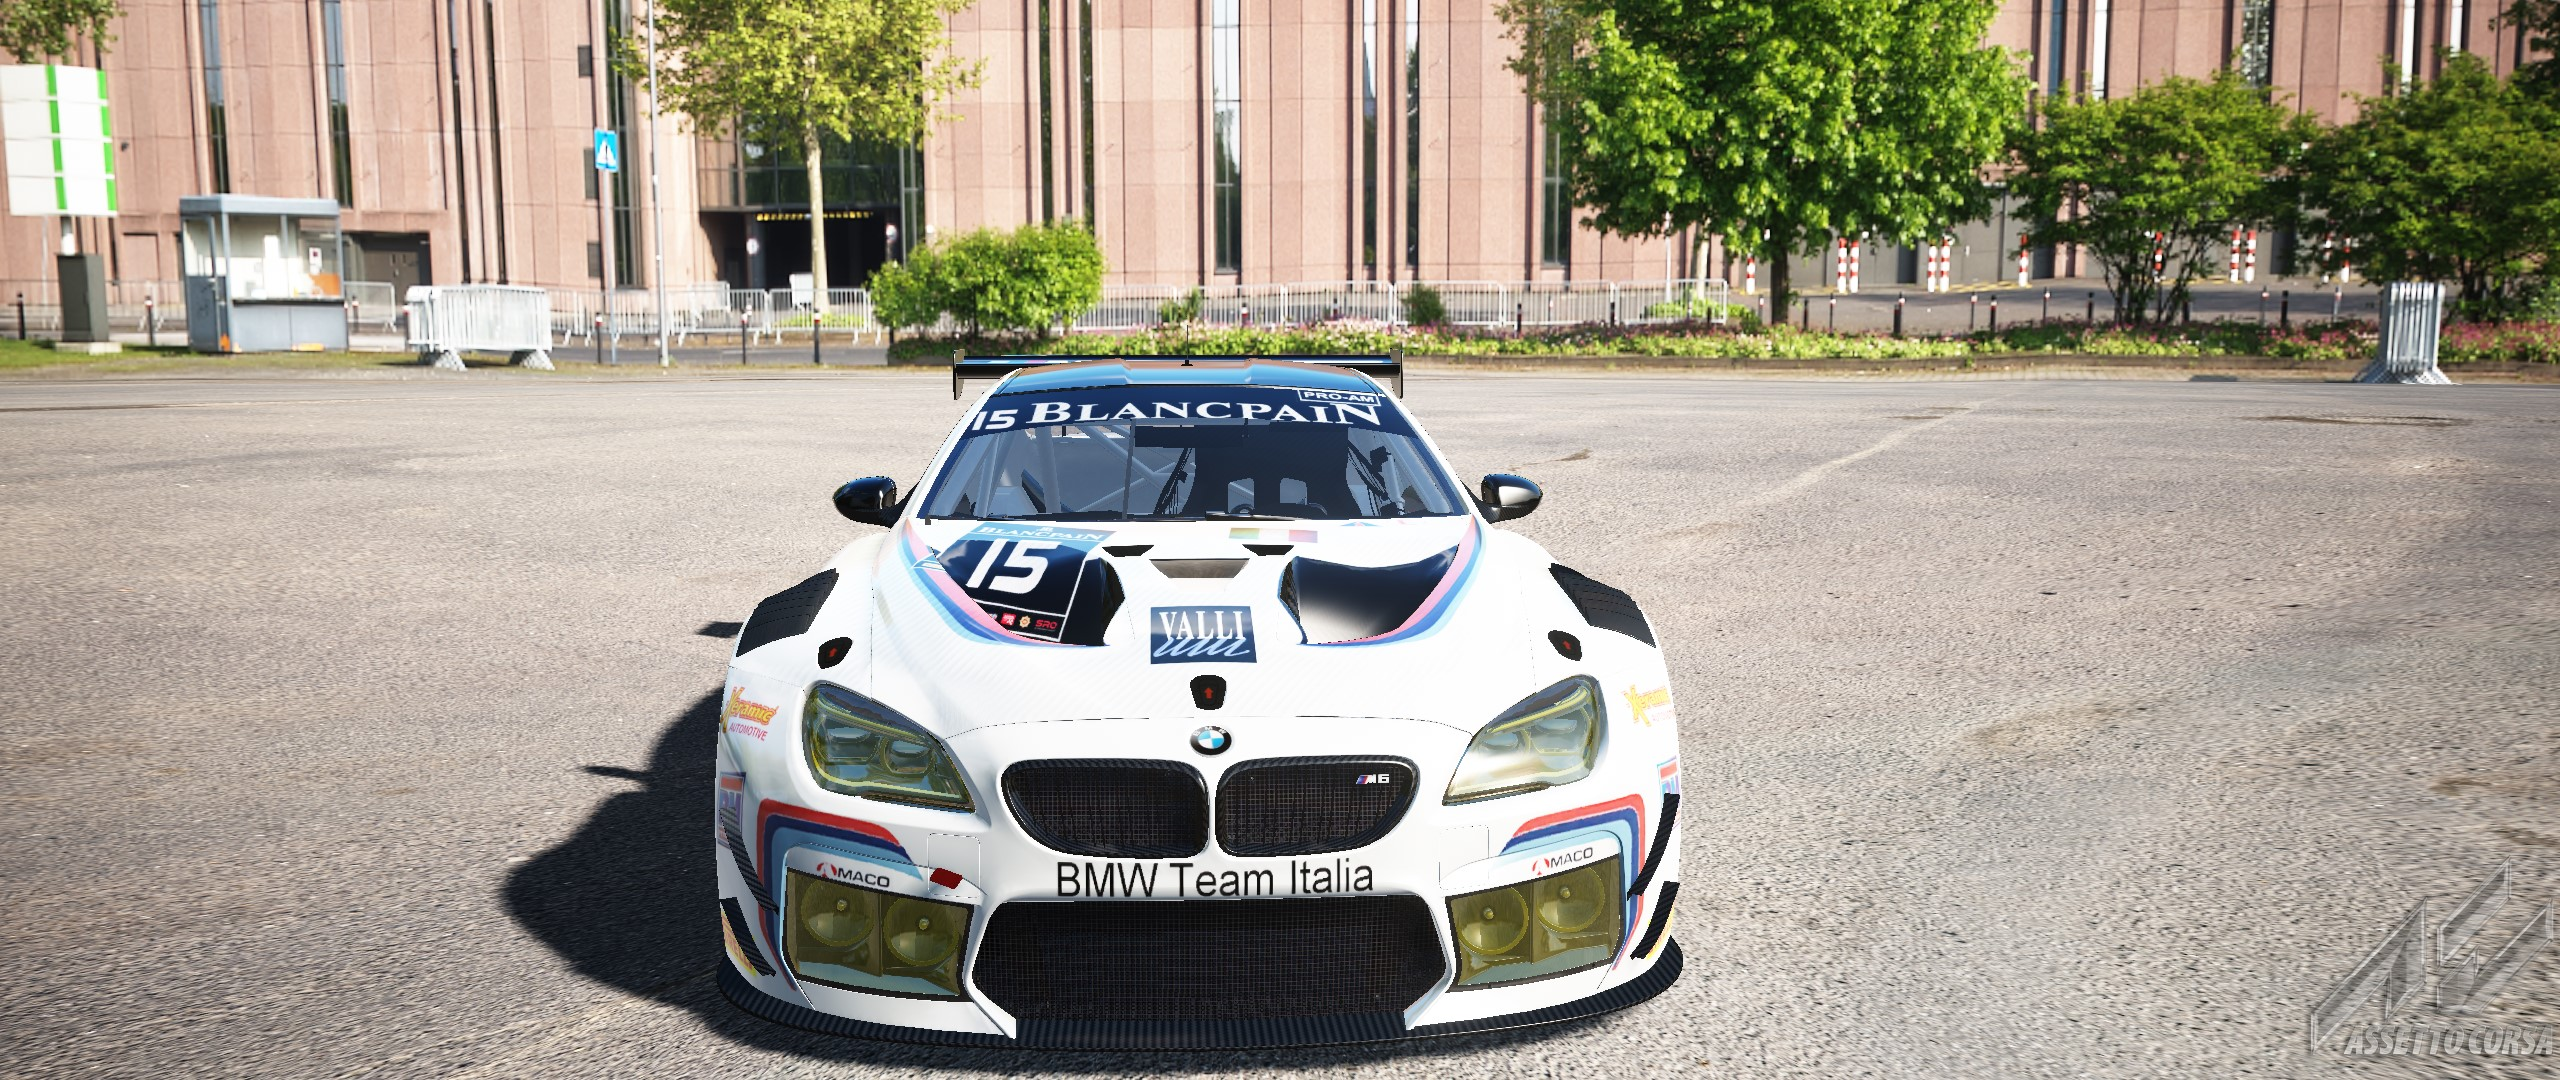 Showroom_bmw_m6_gt3_27-8-2016-10-57-21.jpg